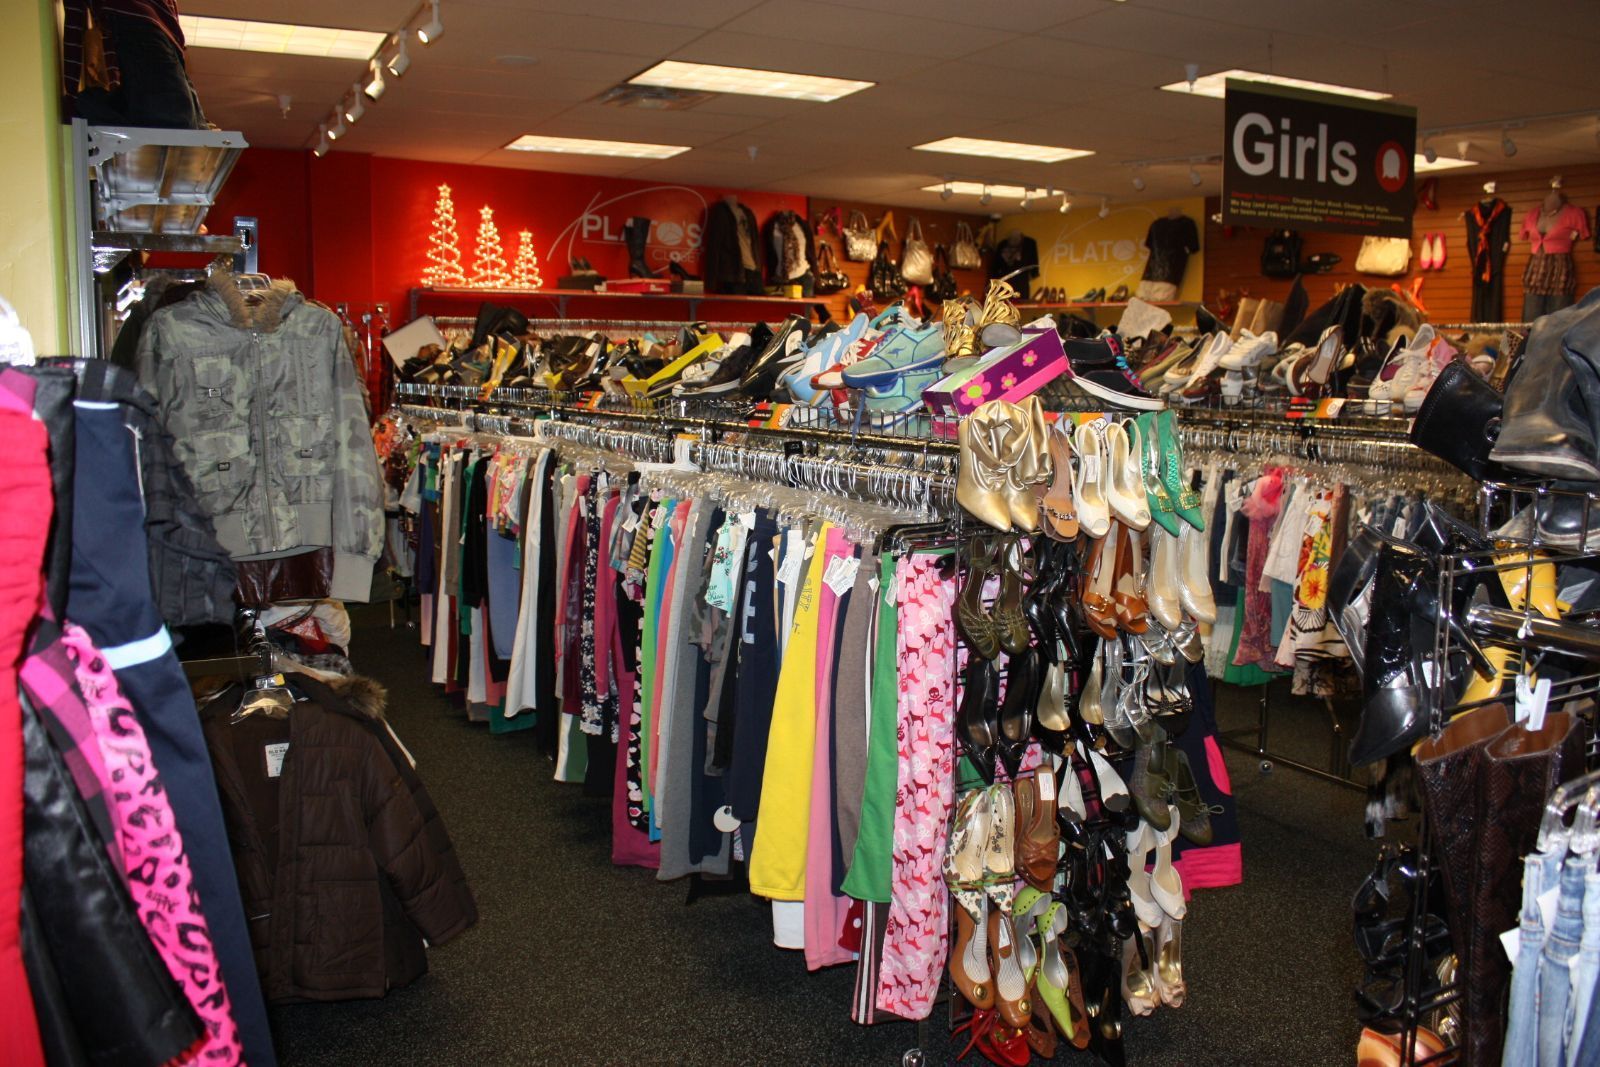 Plato S Closet The Resale Alternative Plato Closet How To Sell Clothes Resale Clothing